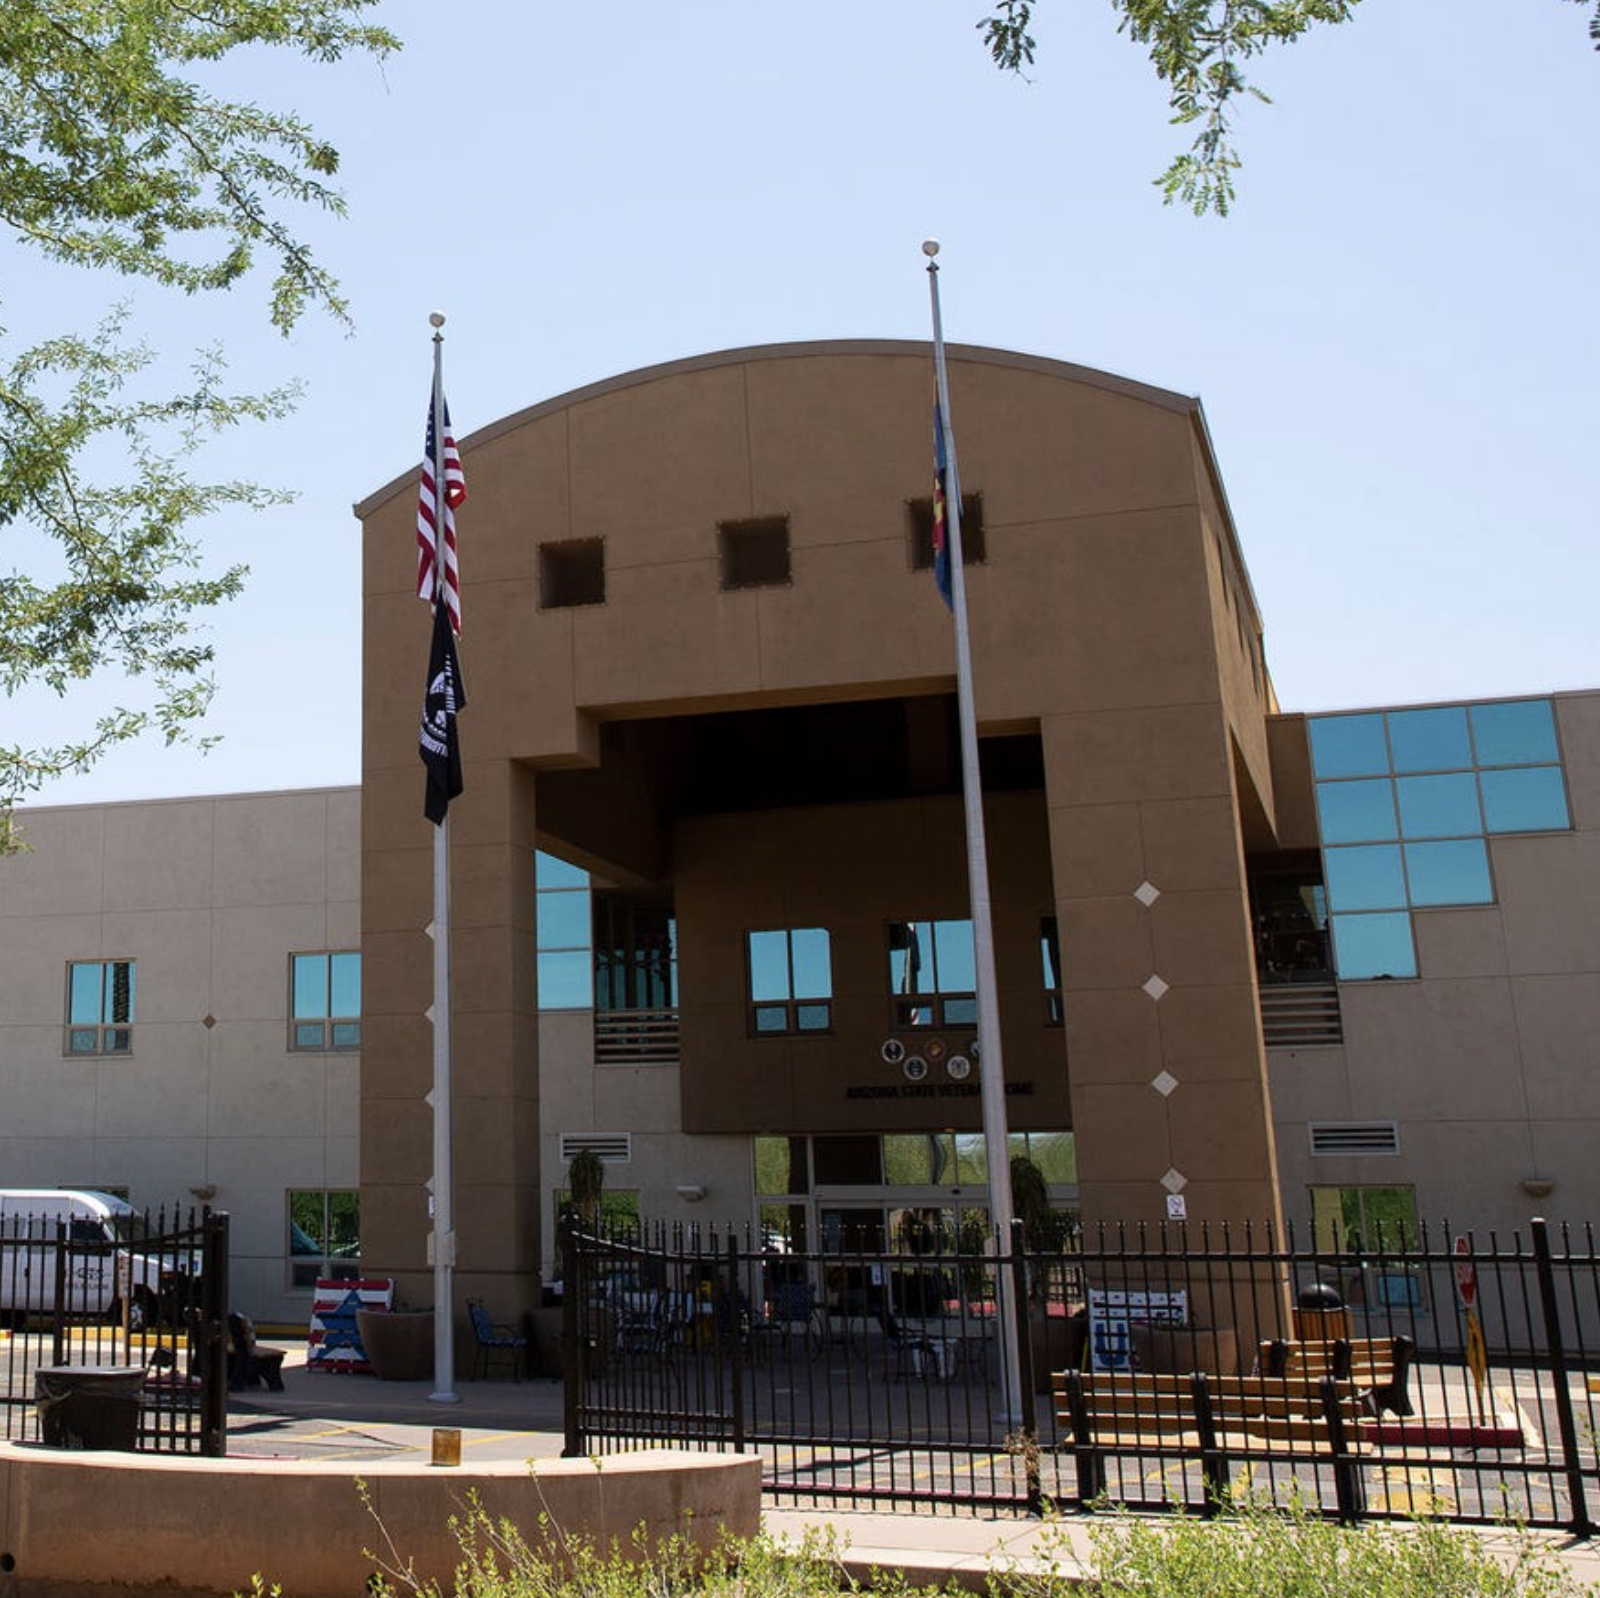 123 have unexpectedly died in nursing homes, but Arizona still gives them top grades Image